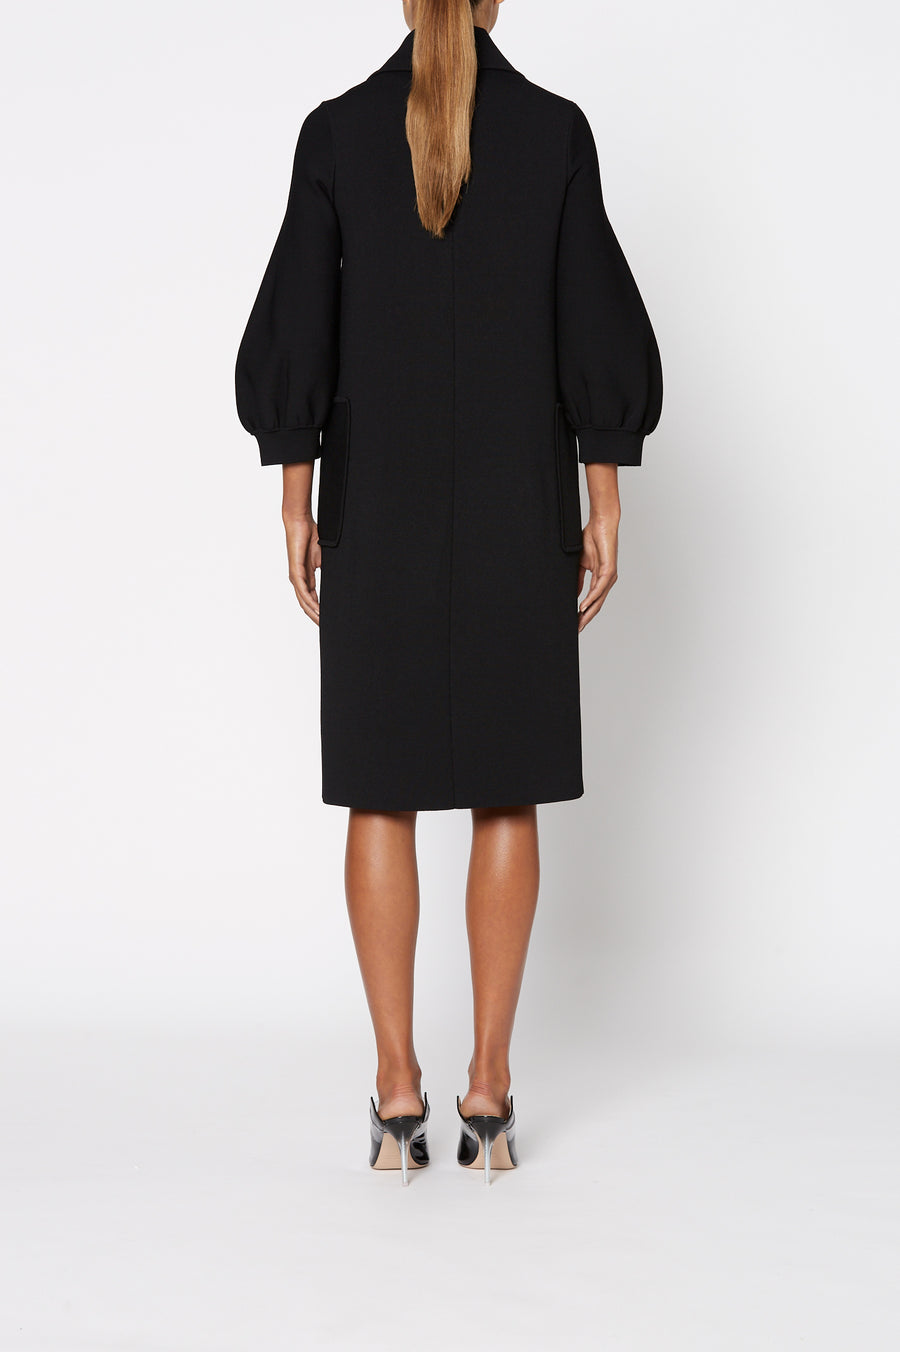 Crepe Knit Cocoon Sleeve Coat, tailored coat, which features a zip front, cocoon sleeves and patch pockets, Color Black